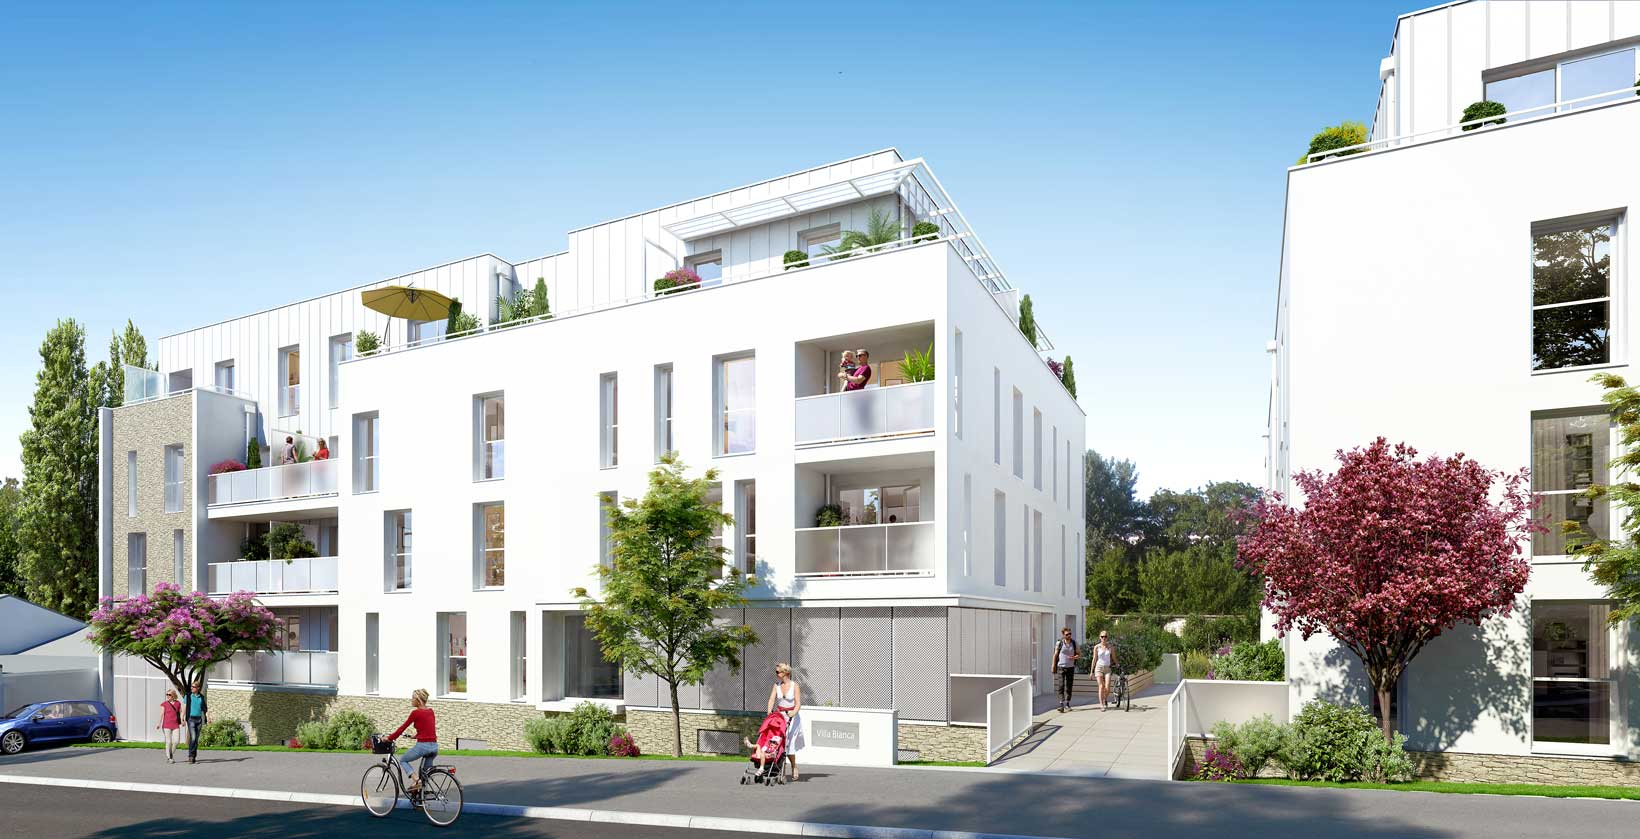 Programme immobilier neuf montpellier ce que vous devez for Programme immobilier neuf 2017